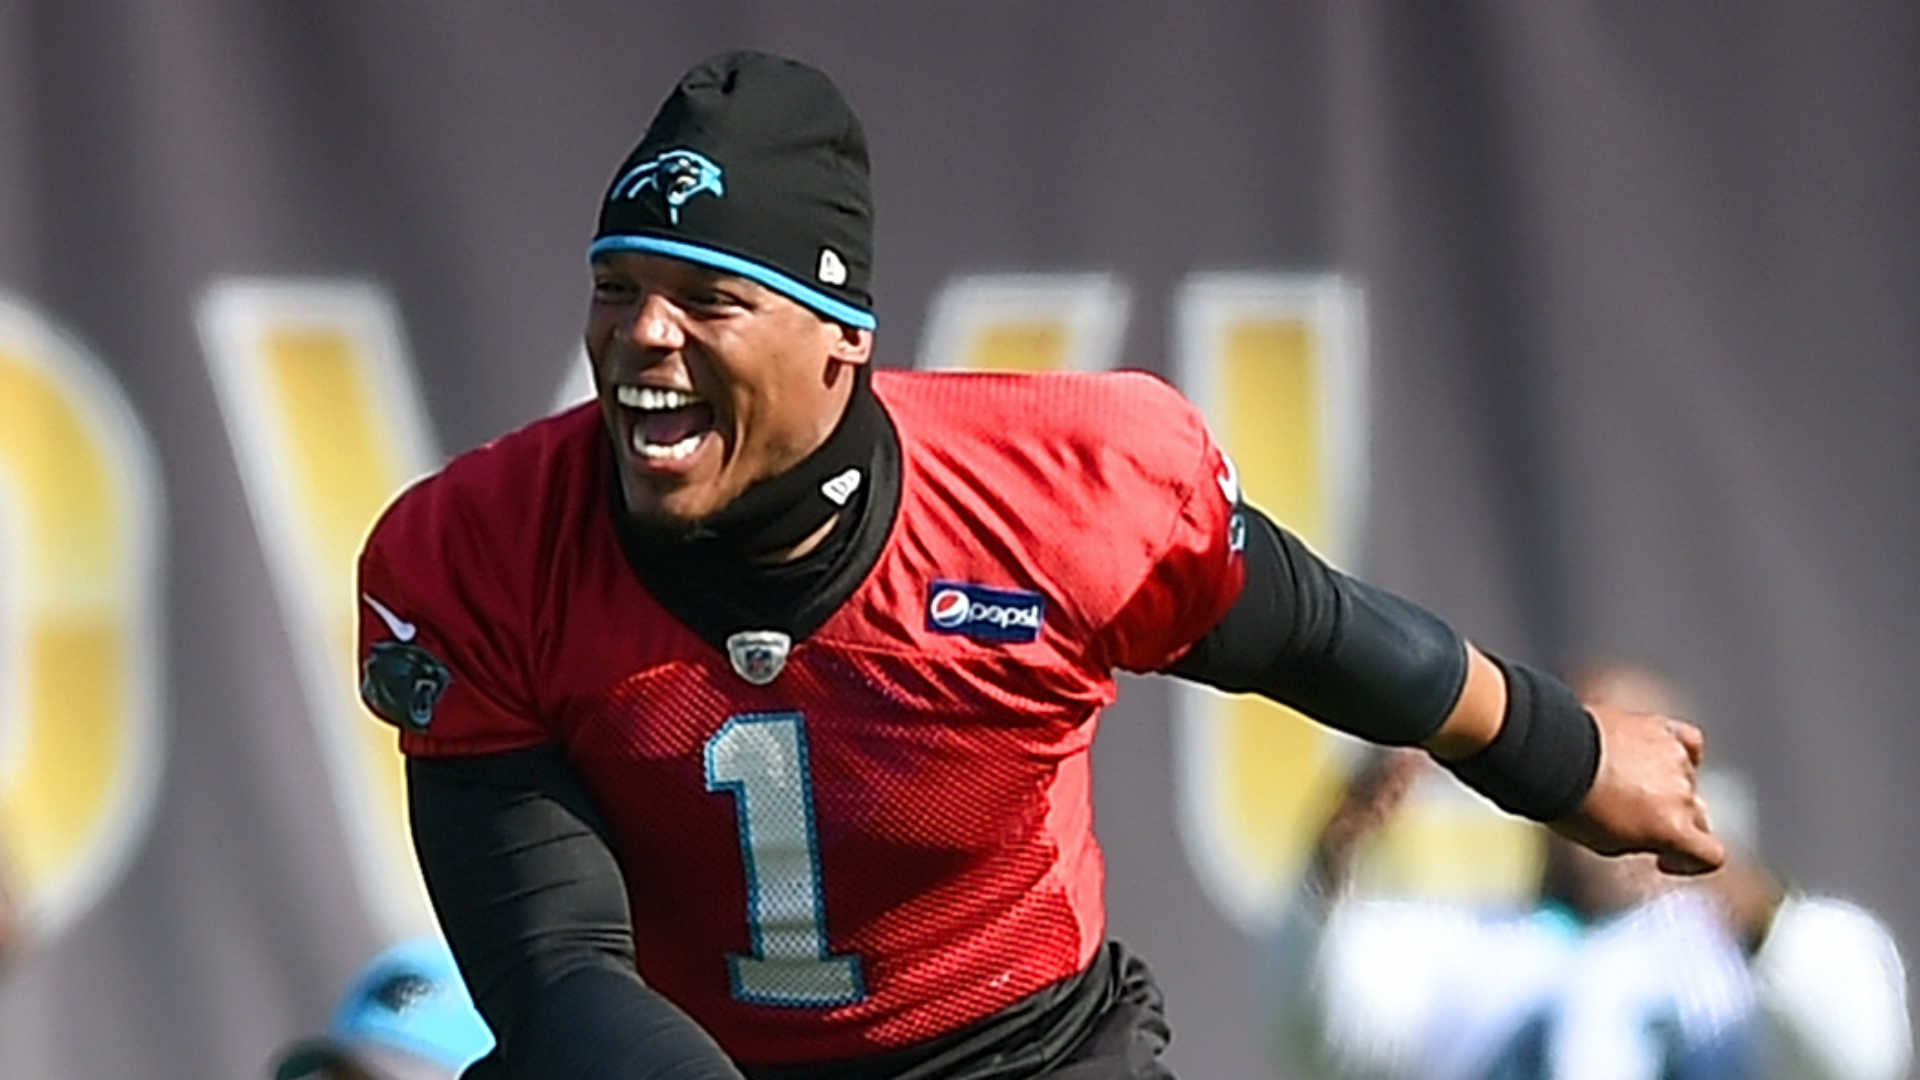 'Dynamic' Cam Newton plays role of cheerleader during Panthers fan fest